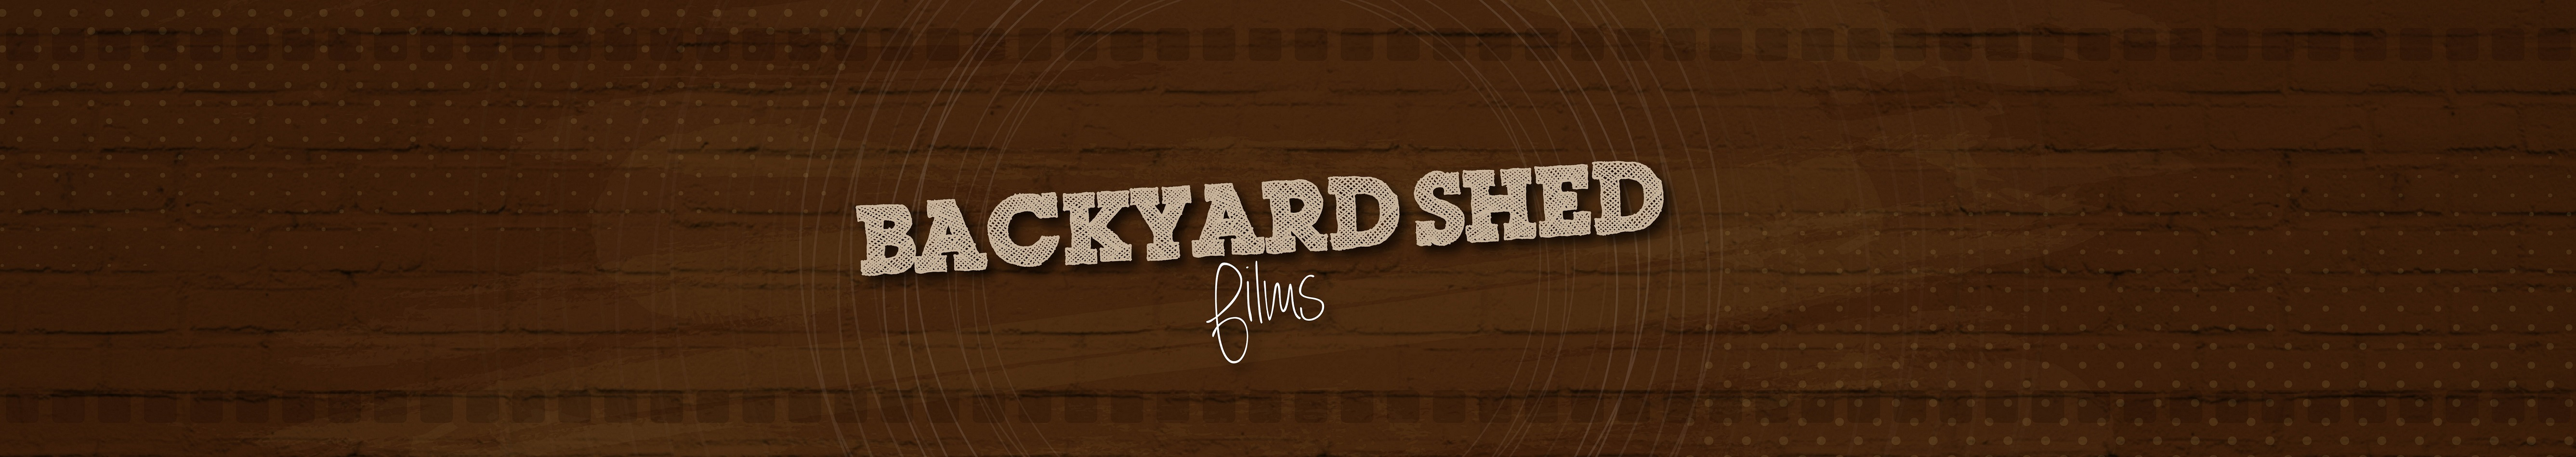 Shortcode Demo | Backyard Shed Films